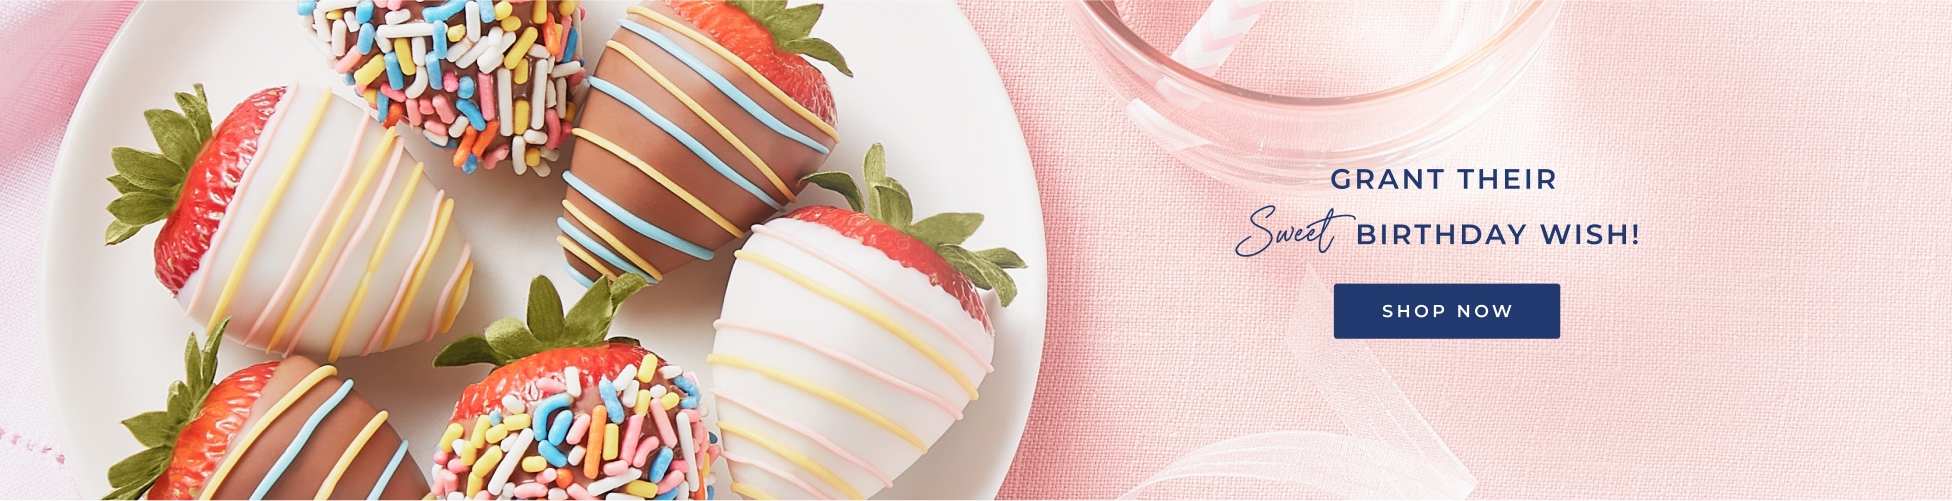 sharis-berries-birthday-banner.jpg